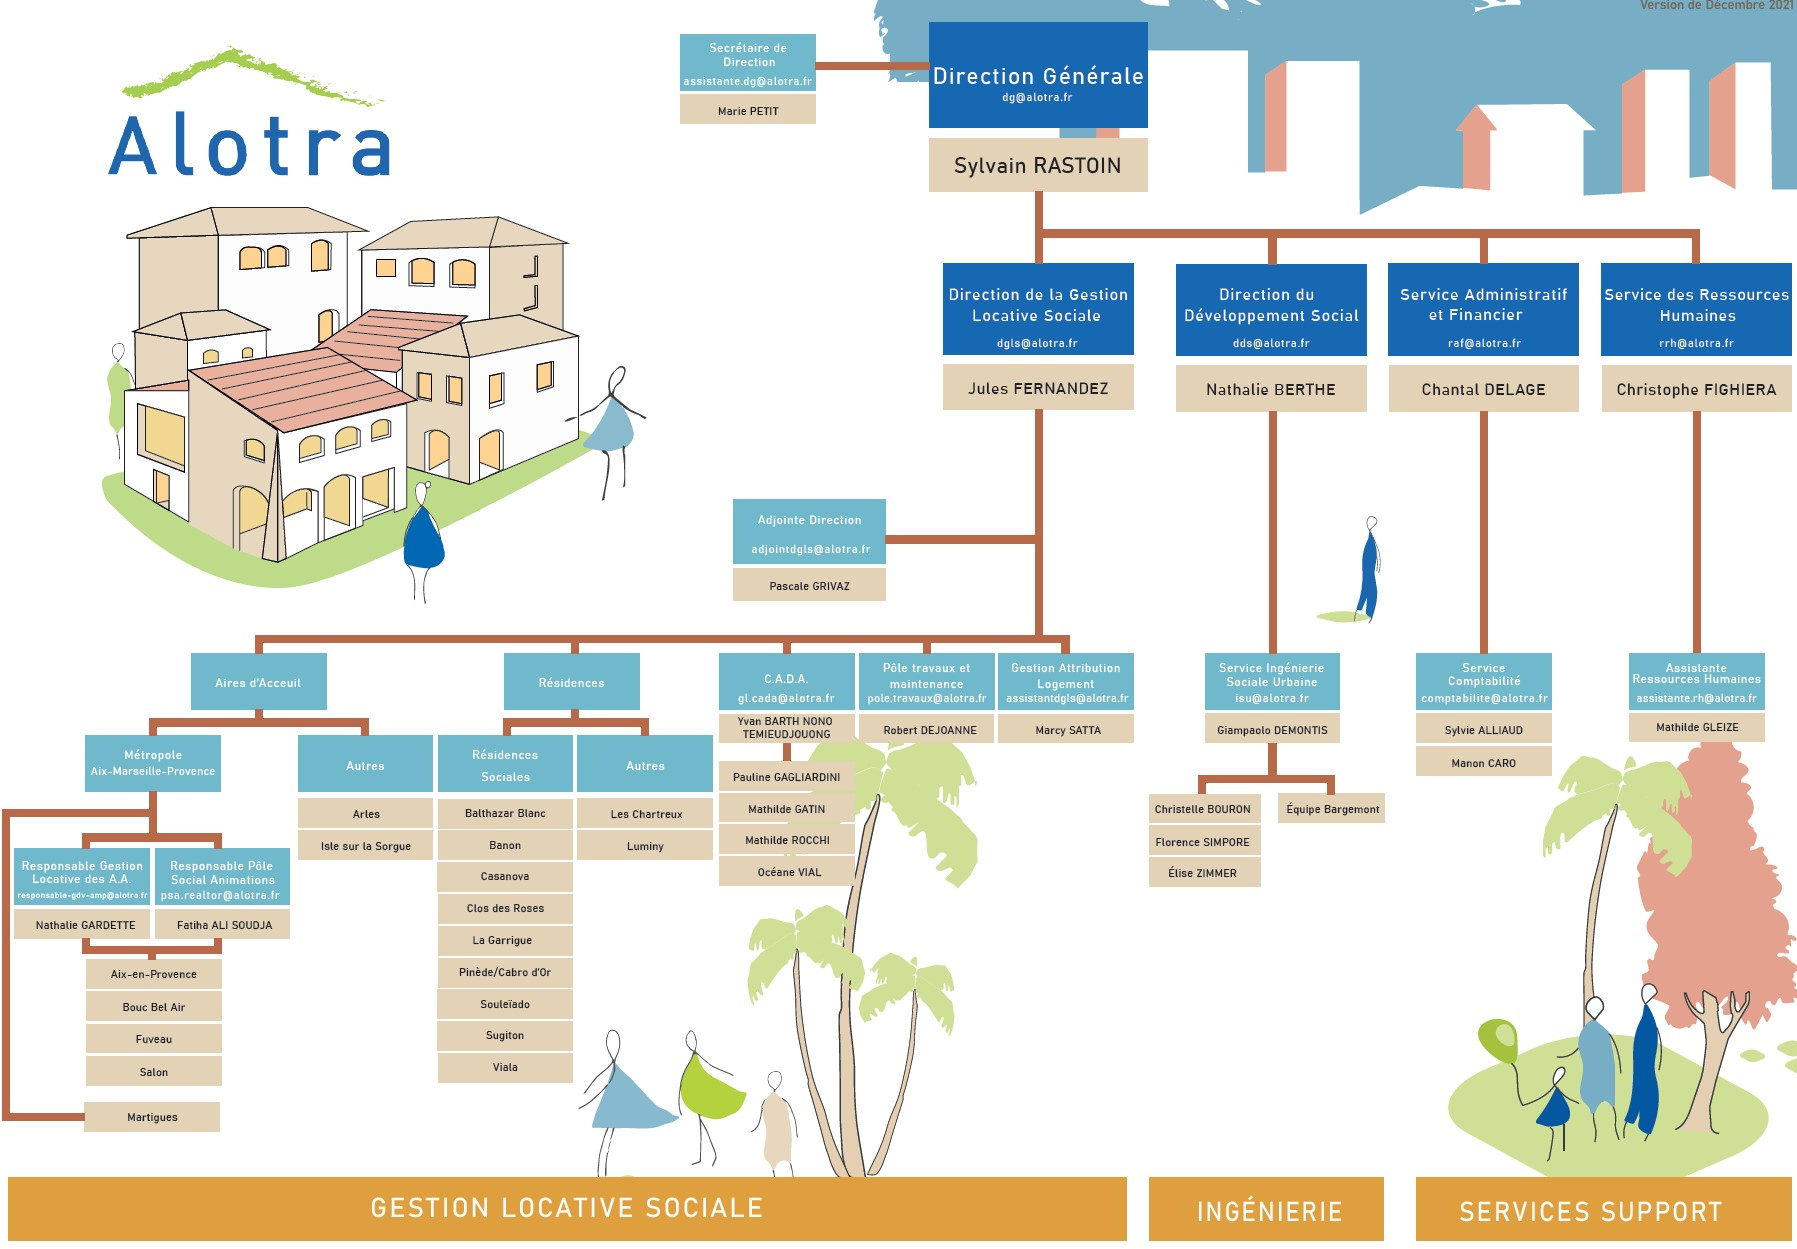 Our organizational chart